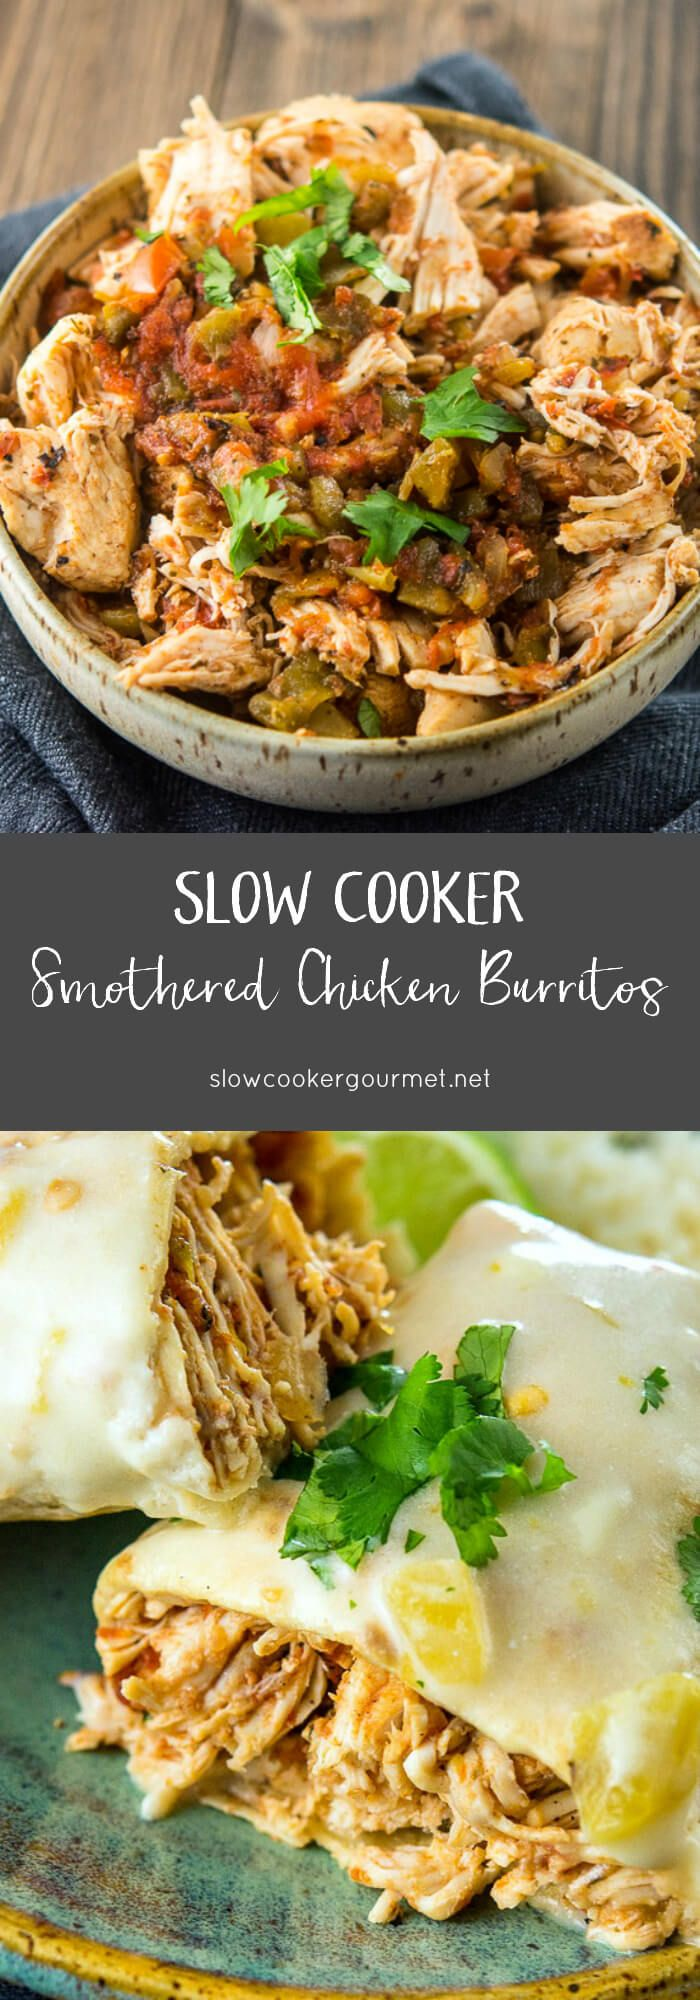 Slow Cooker Smothered Chicken Burritos are a simple way to make a delicious dinner! Flavorful Mexican style chicken stuffed into tender flour tortillas and baked until crispy.  Then it's all topped off with the most delicious sour cream cheese sauce!